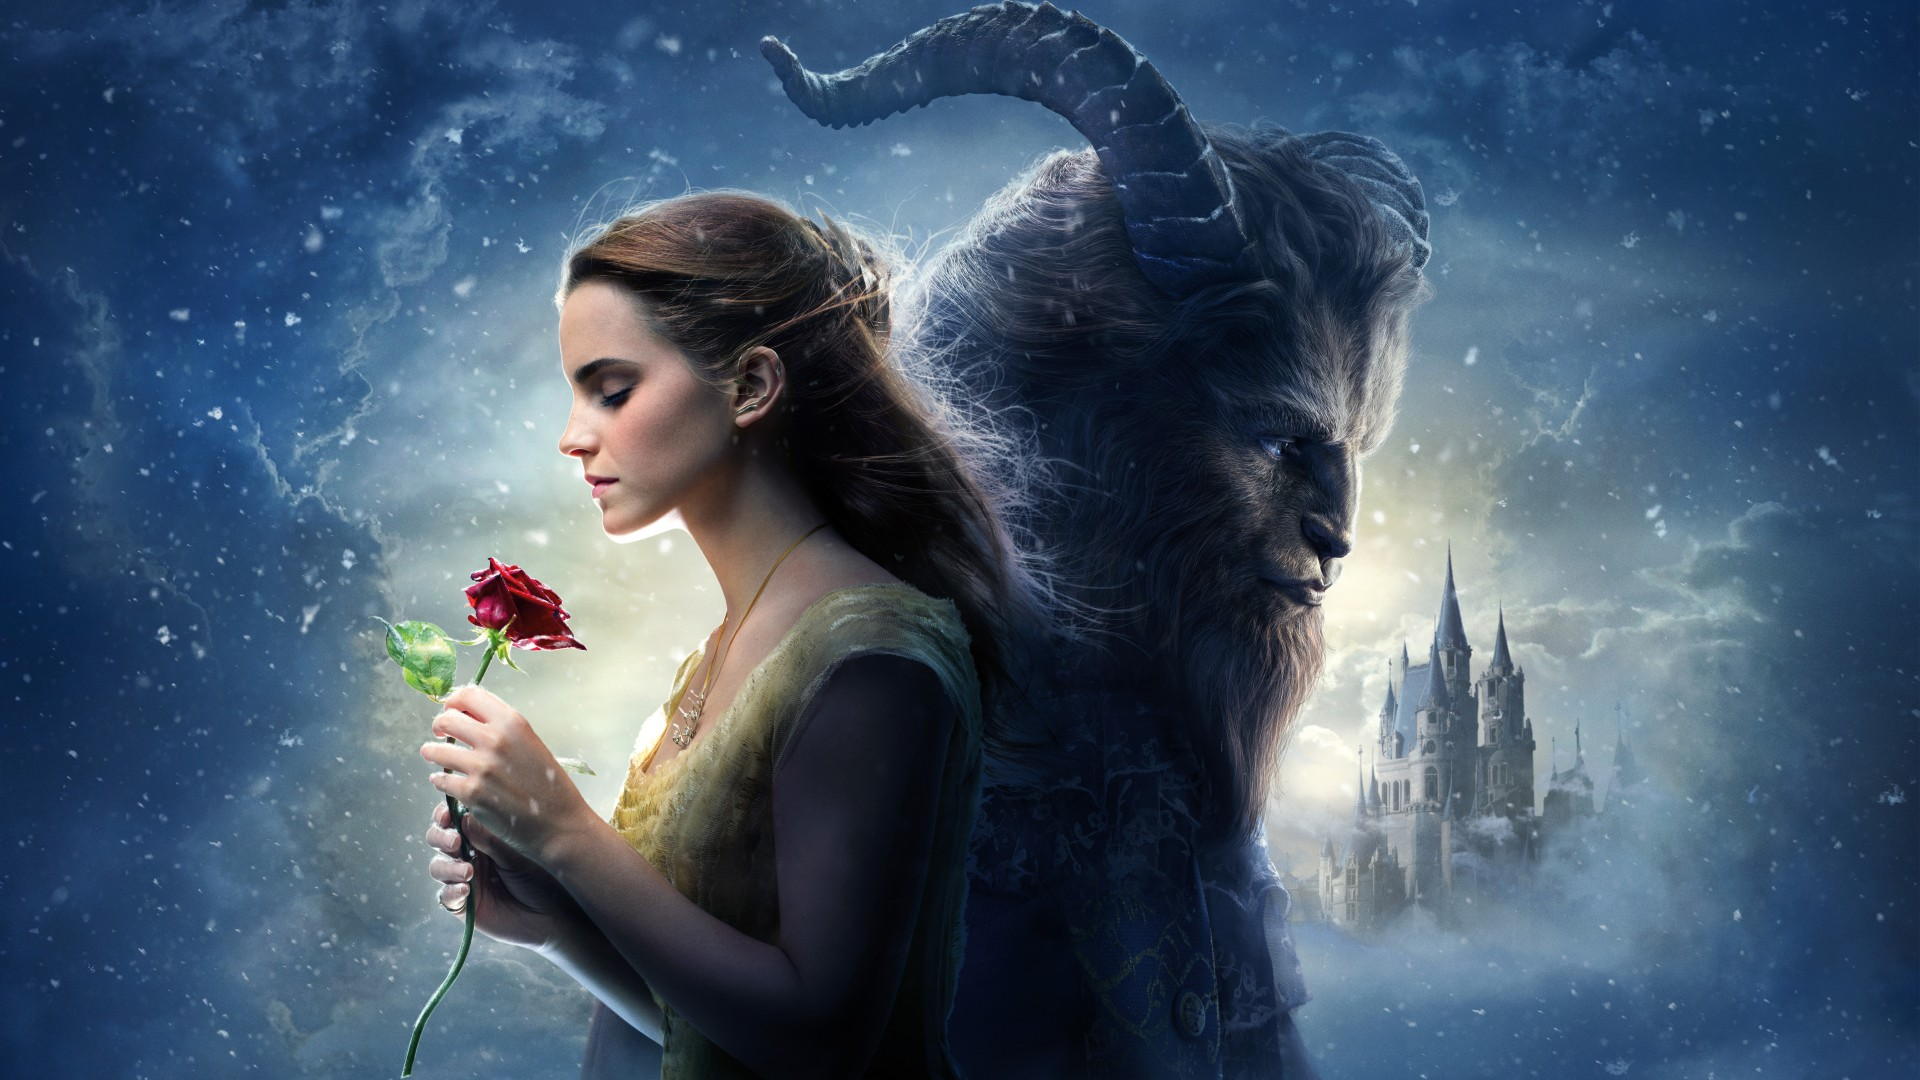 Creative Fall Wallpaper 2017 Beauty And The Beast Wallpapers Hd Wallpapers Id